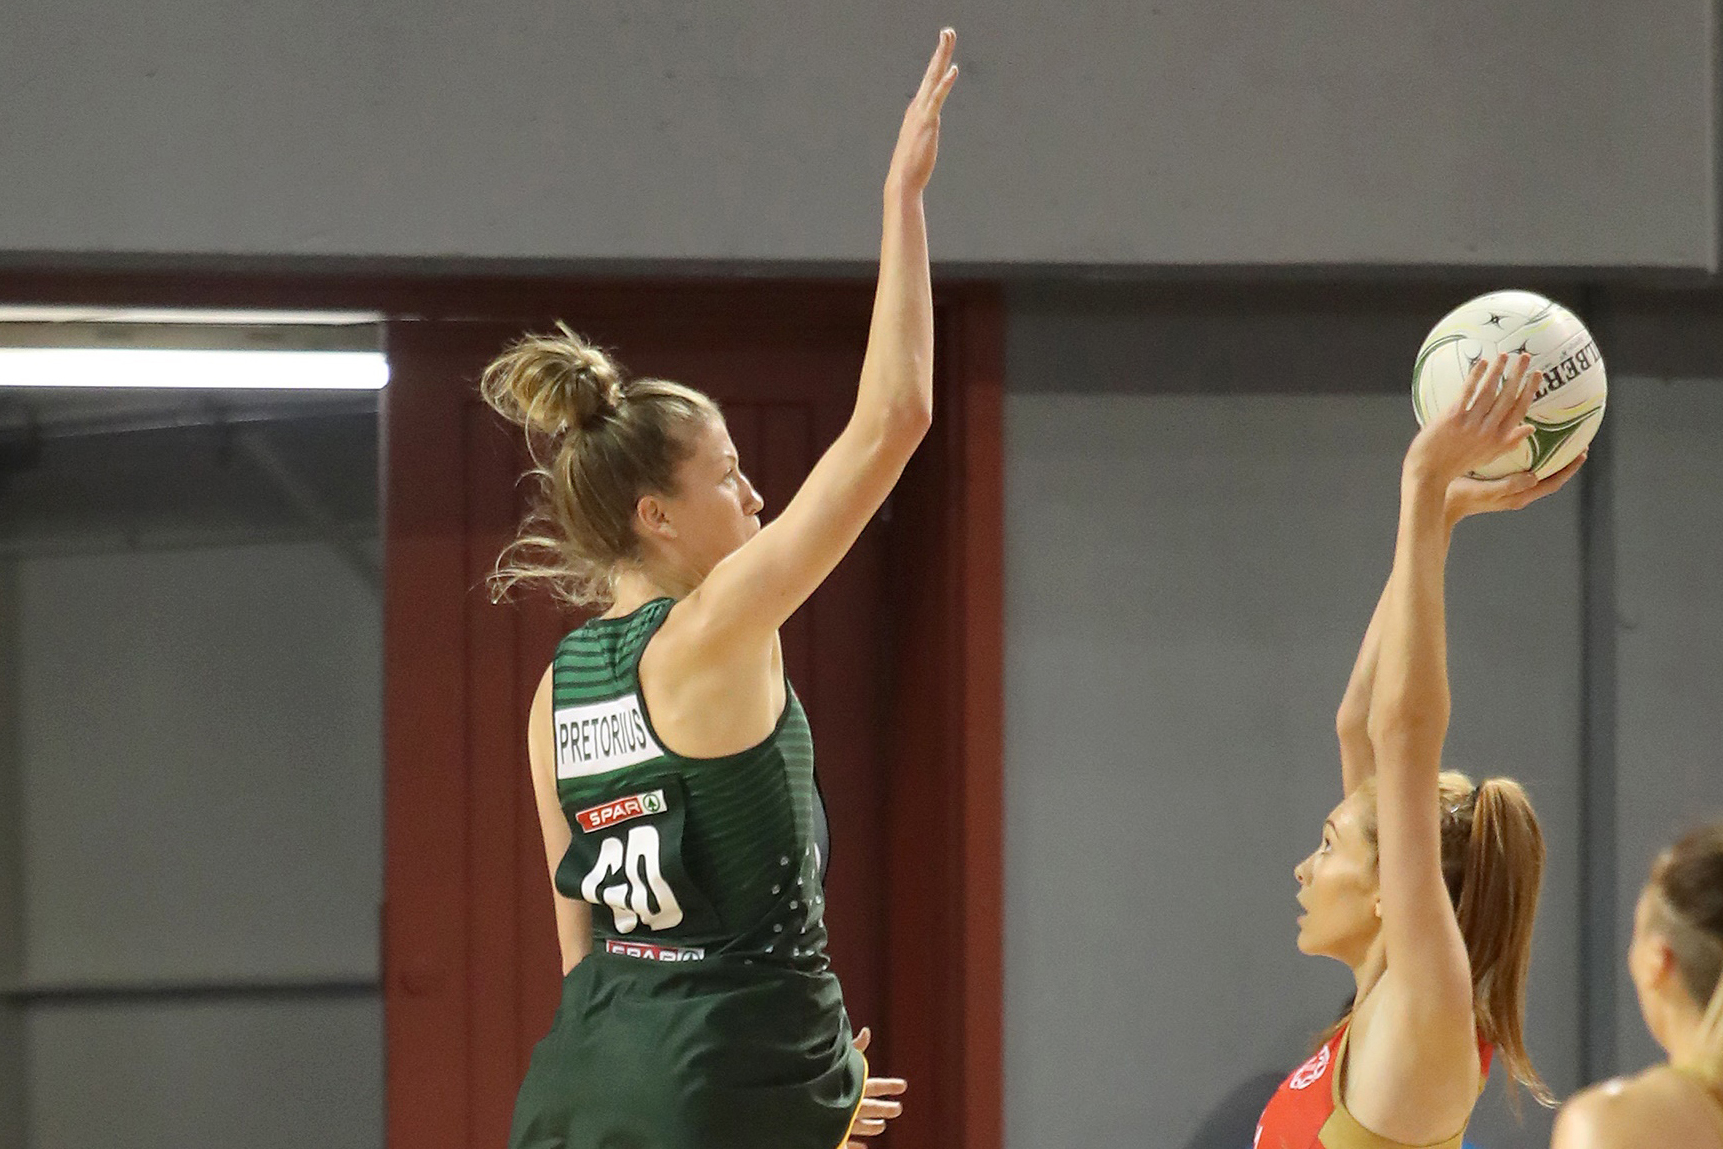 Karla takes netball world by storm